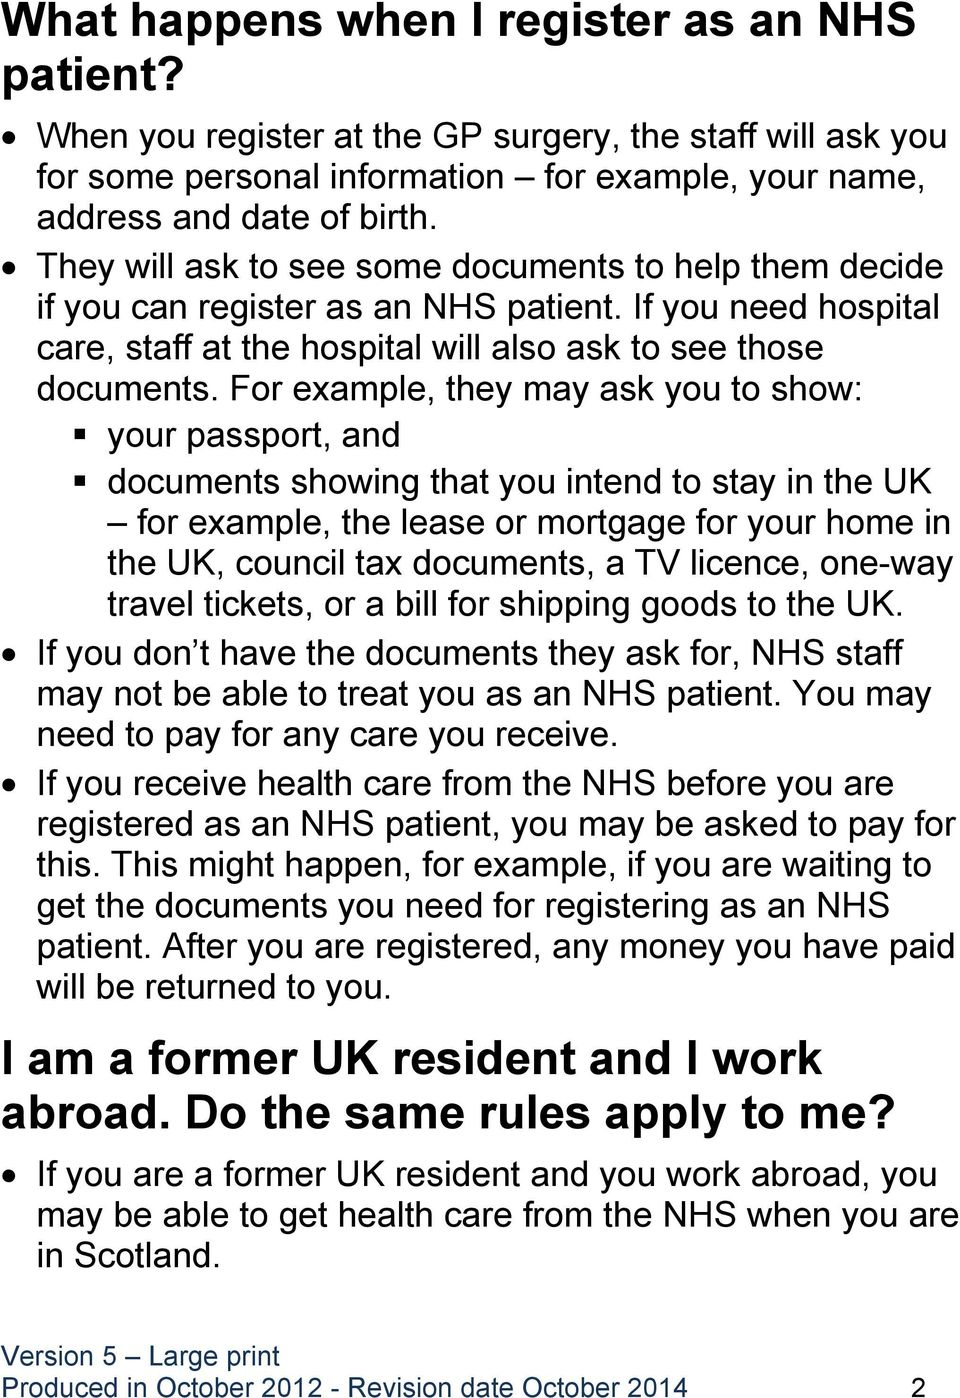 For example, they may ask you to show: your passport, and documents showing that you intend to stay in the UK for example, the lease or mortgage for your home in the UK, council tax documents, a TV